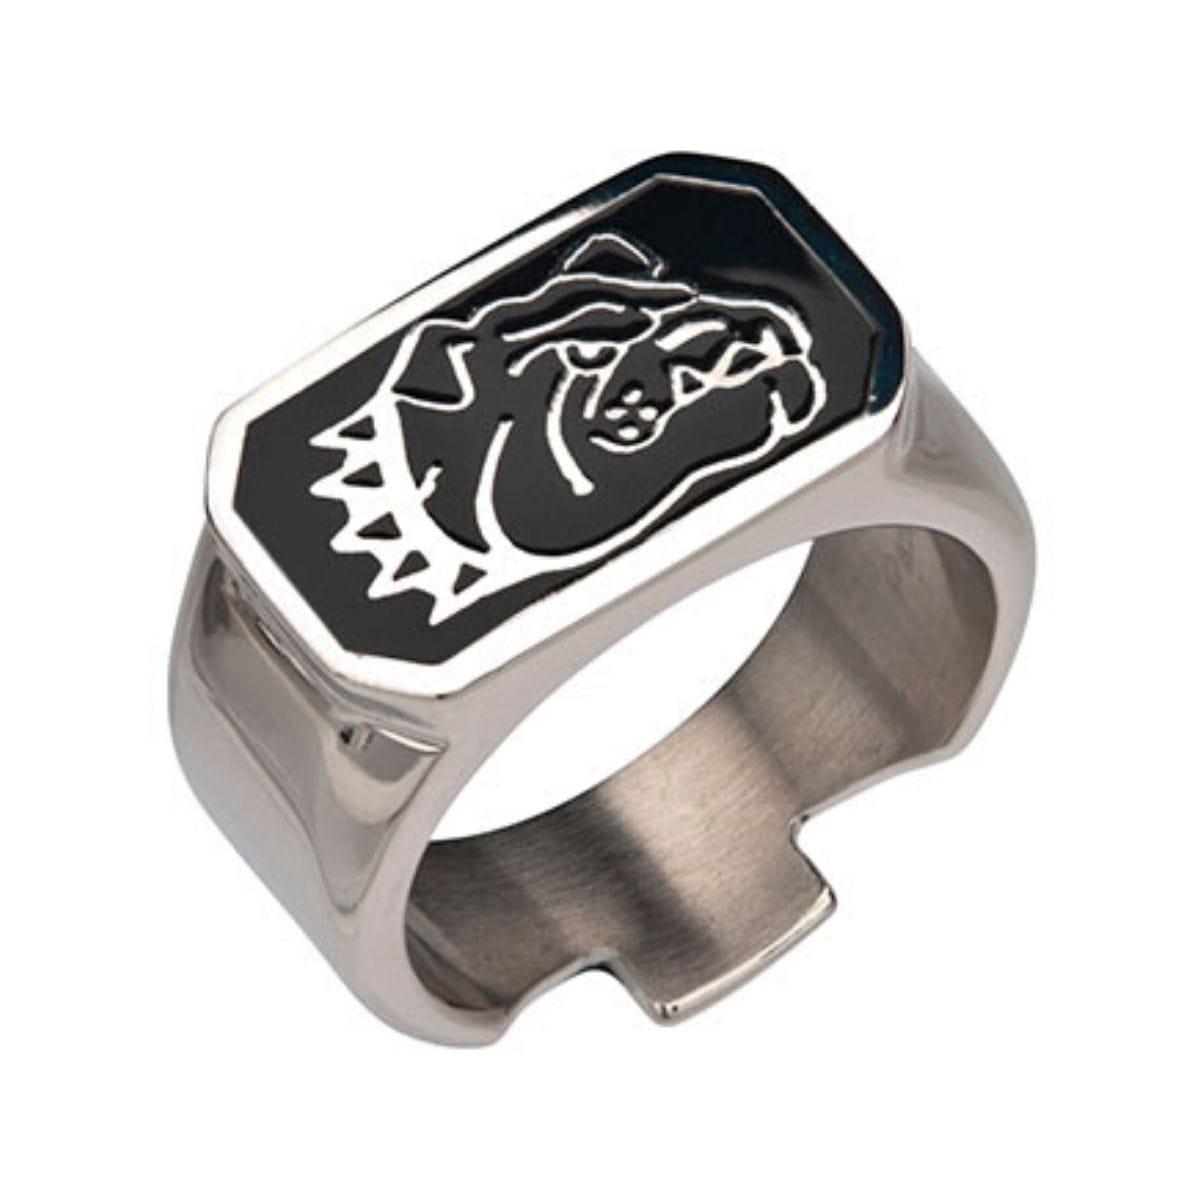 Black & Silver Stainless Steel Bulldog Bottle Opener Ring